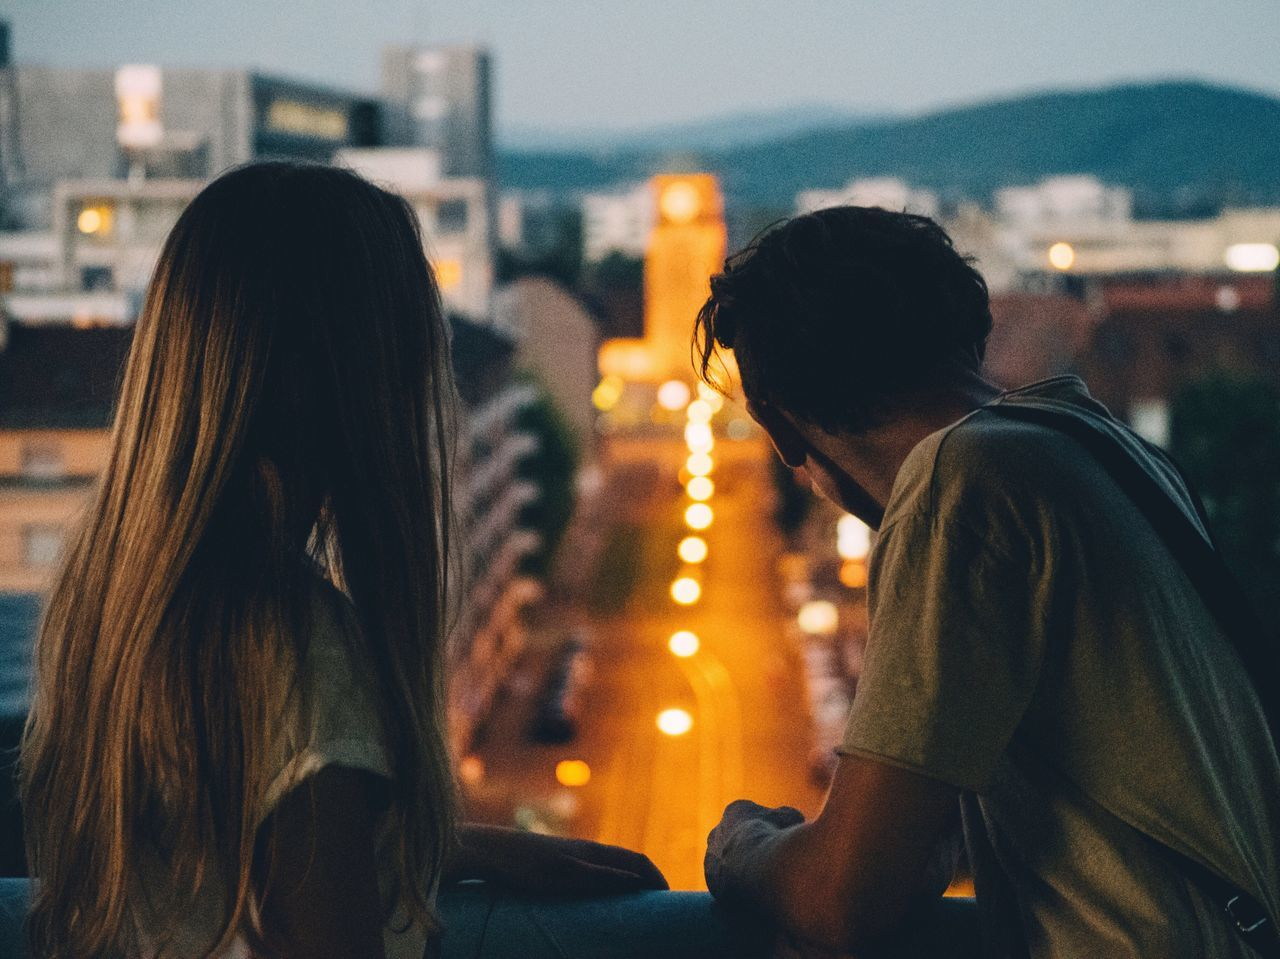 City Lights people bokeh cityscapes city lights Nightphotography Night Lights urban urban landscape girl guy switzerland Basel Colors building Overnight Success Finding New Frontiers Market Bestsellers 2017